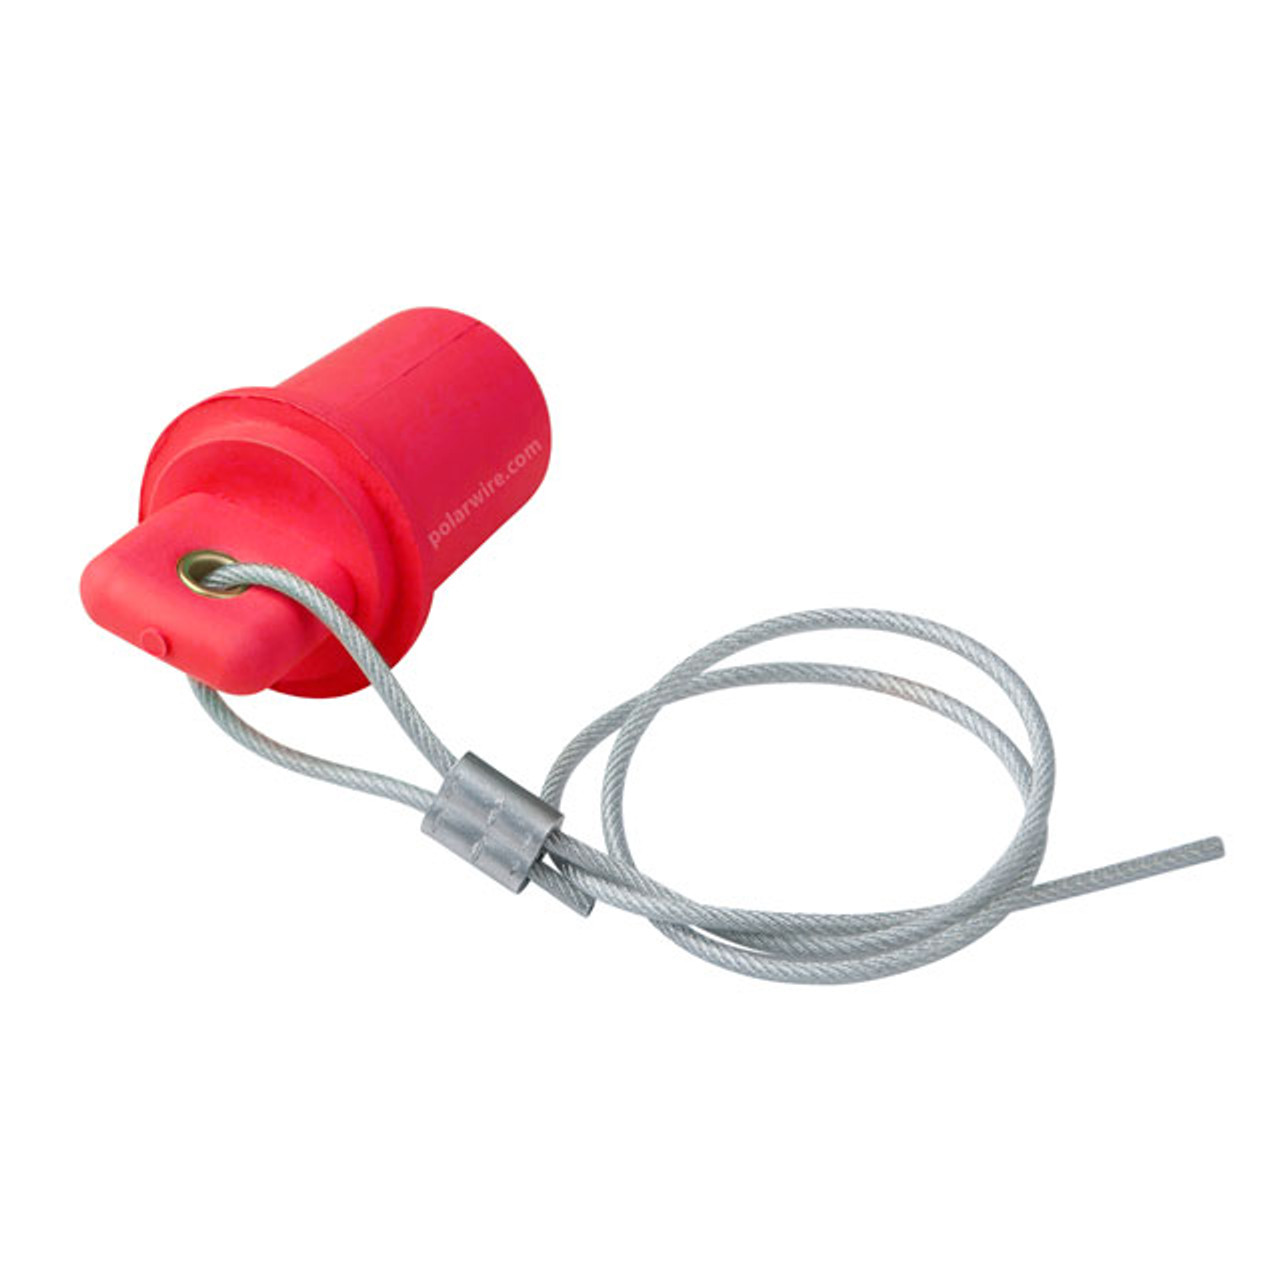 Marinco Cam Lock 400 amp red male protective cover with 20 inch lanyard